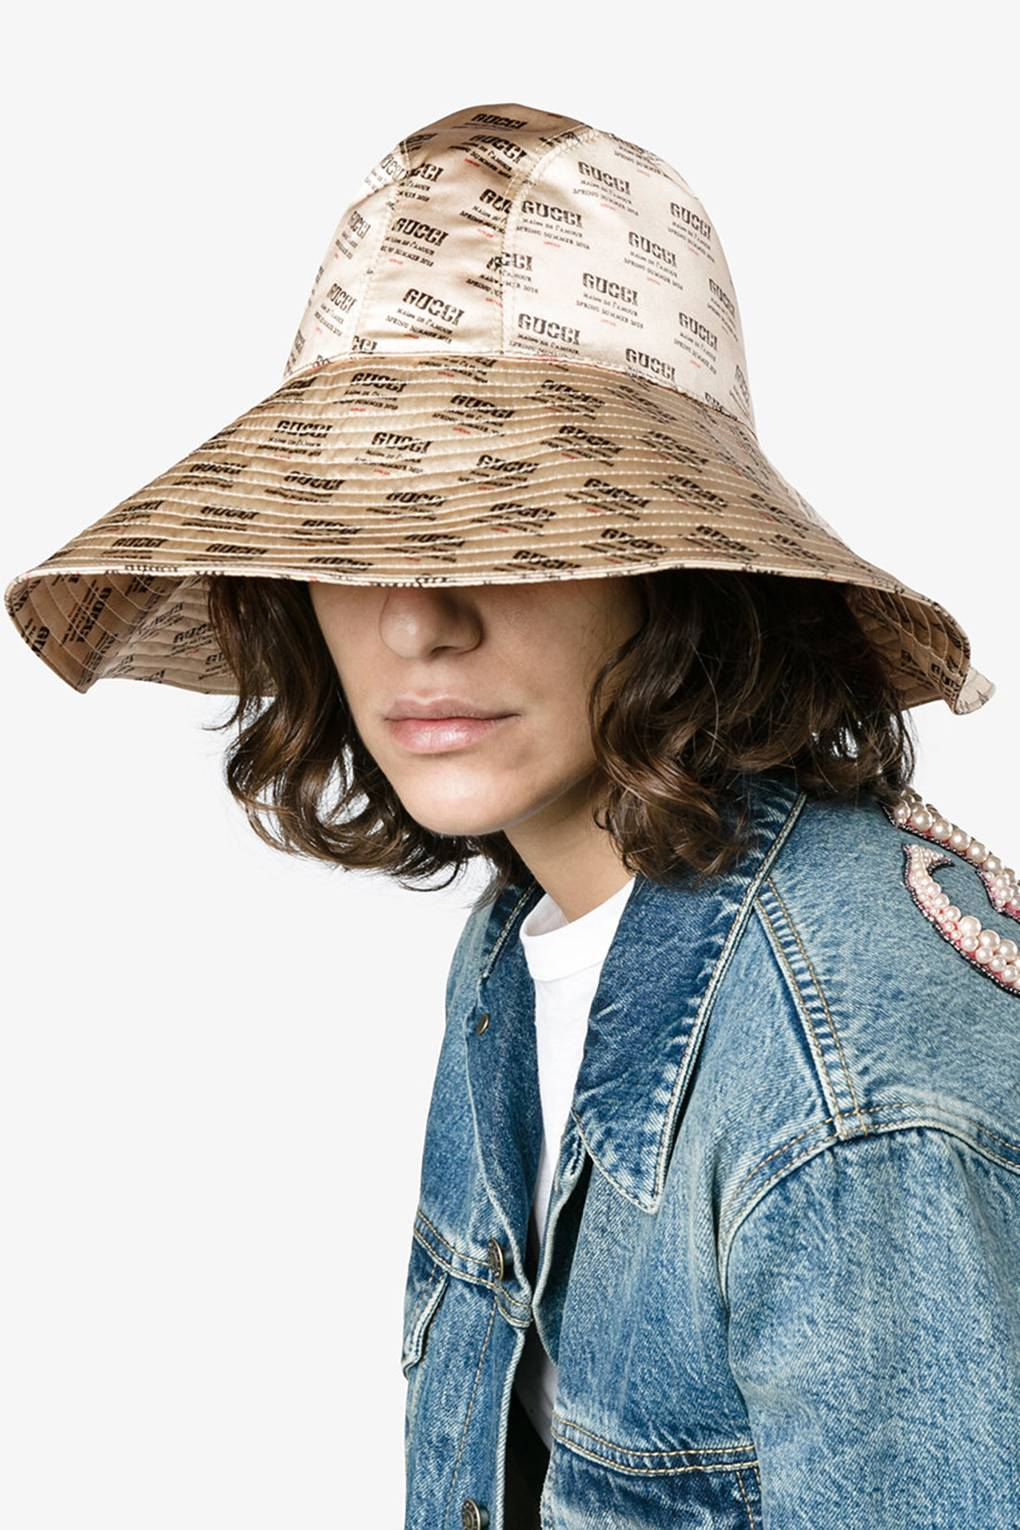 d4c0283af1265 Sun Hats  The Best Summer Sun Hats And Caps 2018